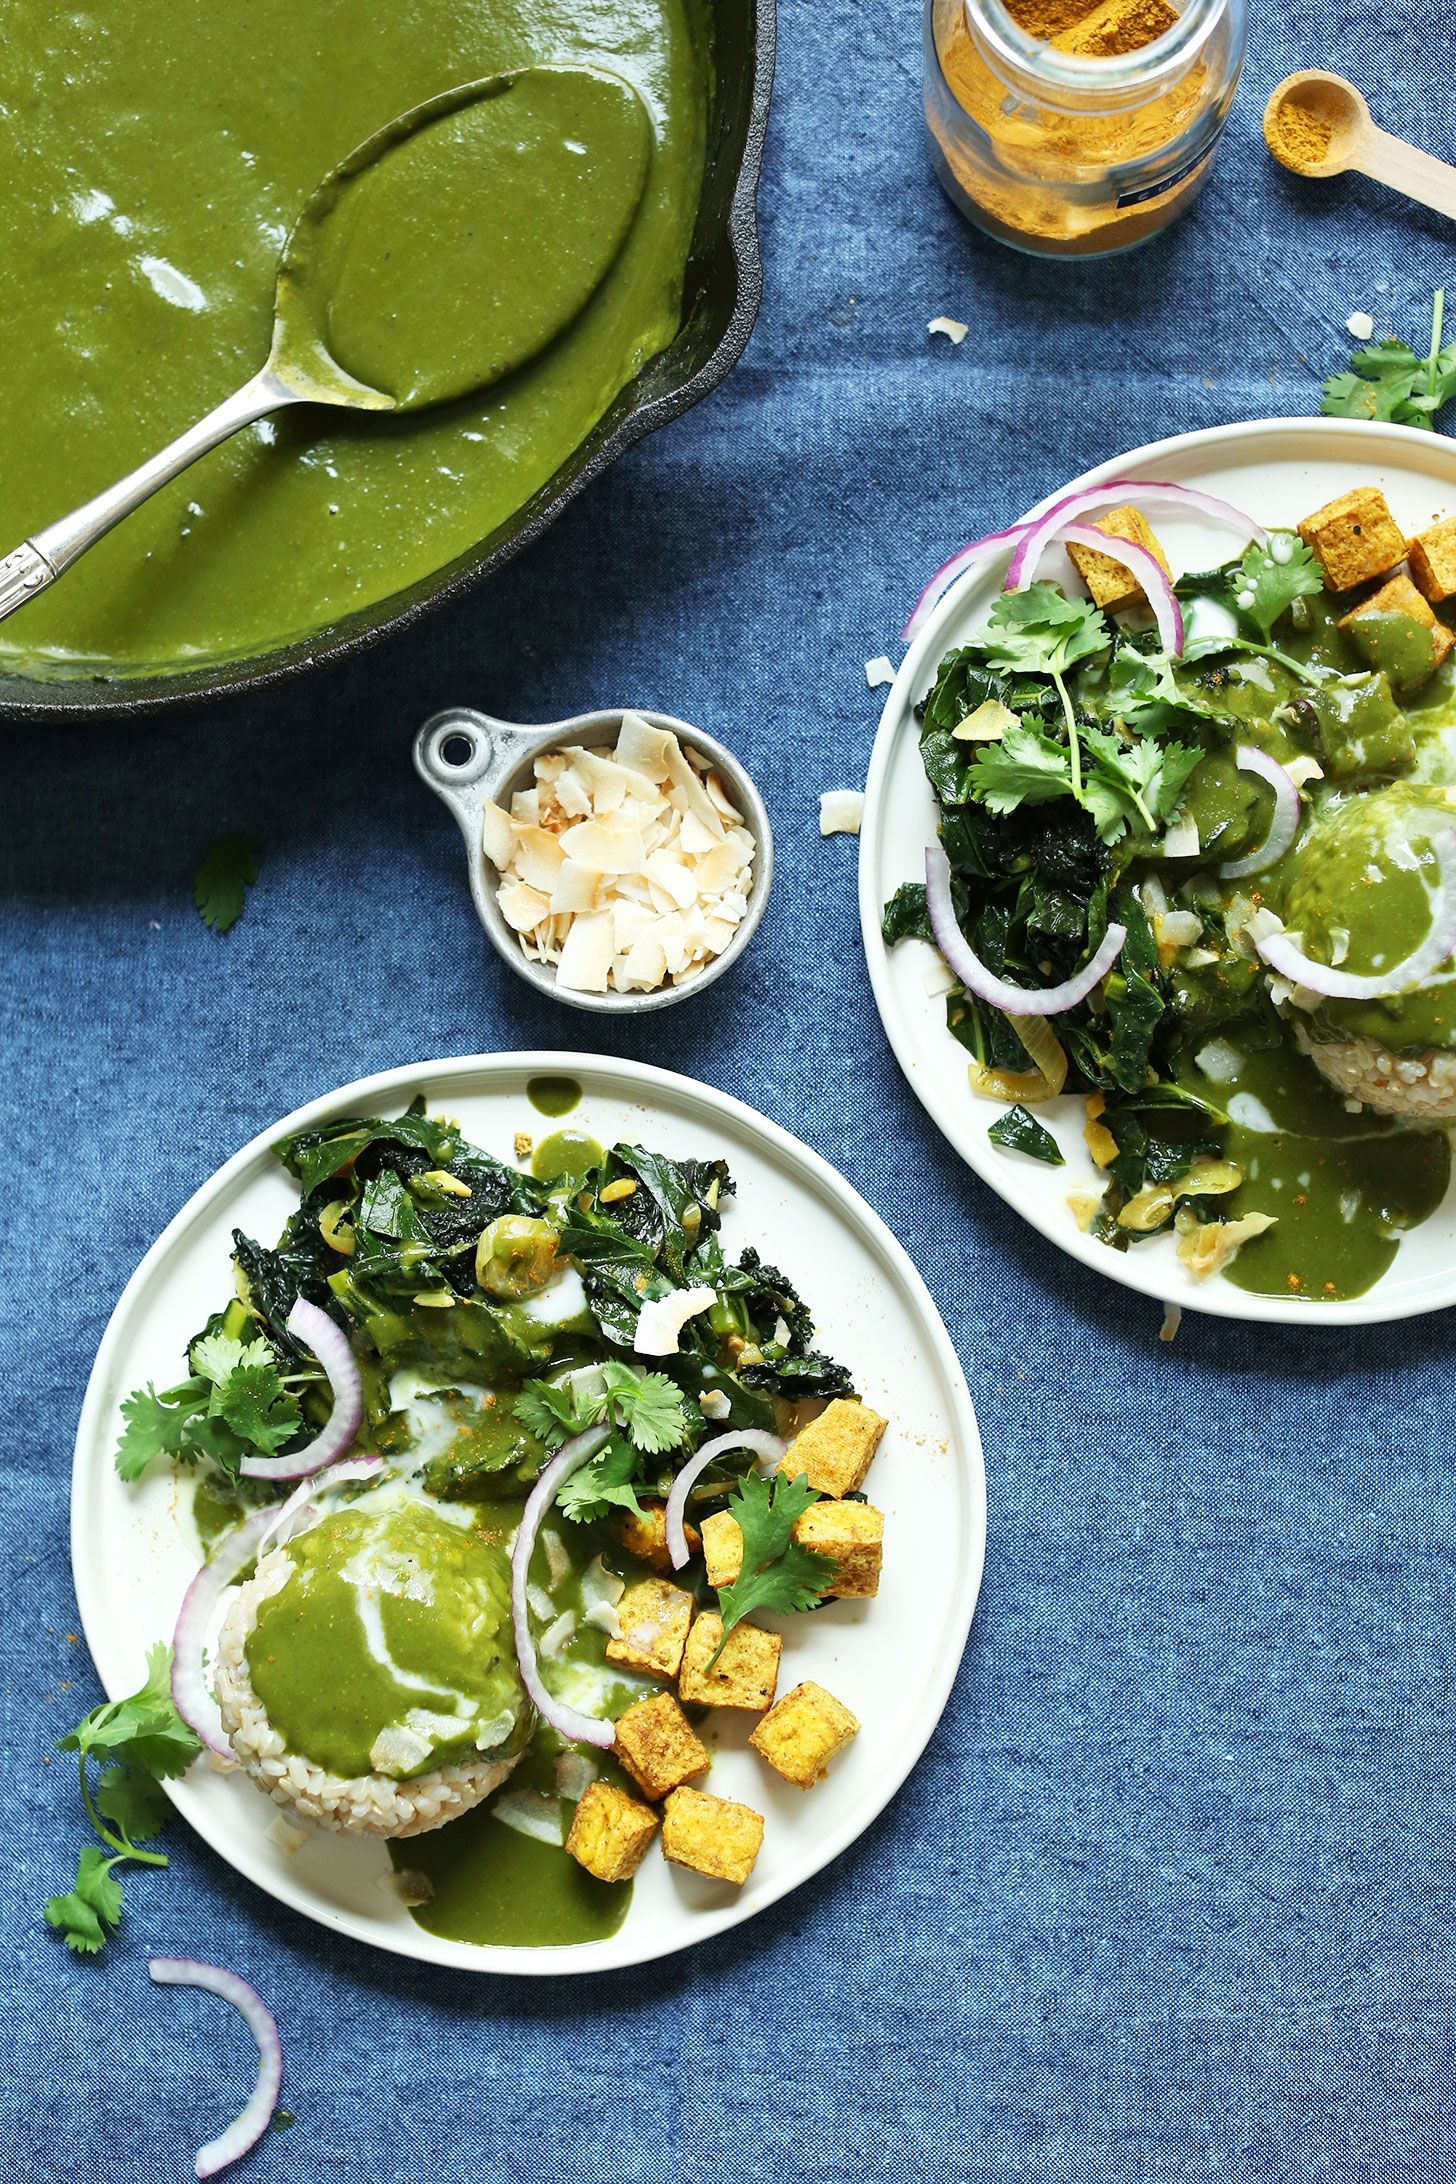 amazing-green-curry-with-tons-of-greens-serve-with-tofu-and-curried-kale-for-a-plantbased-meal-vegan-glutenfree-curry-recipe